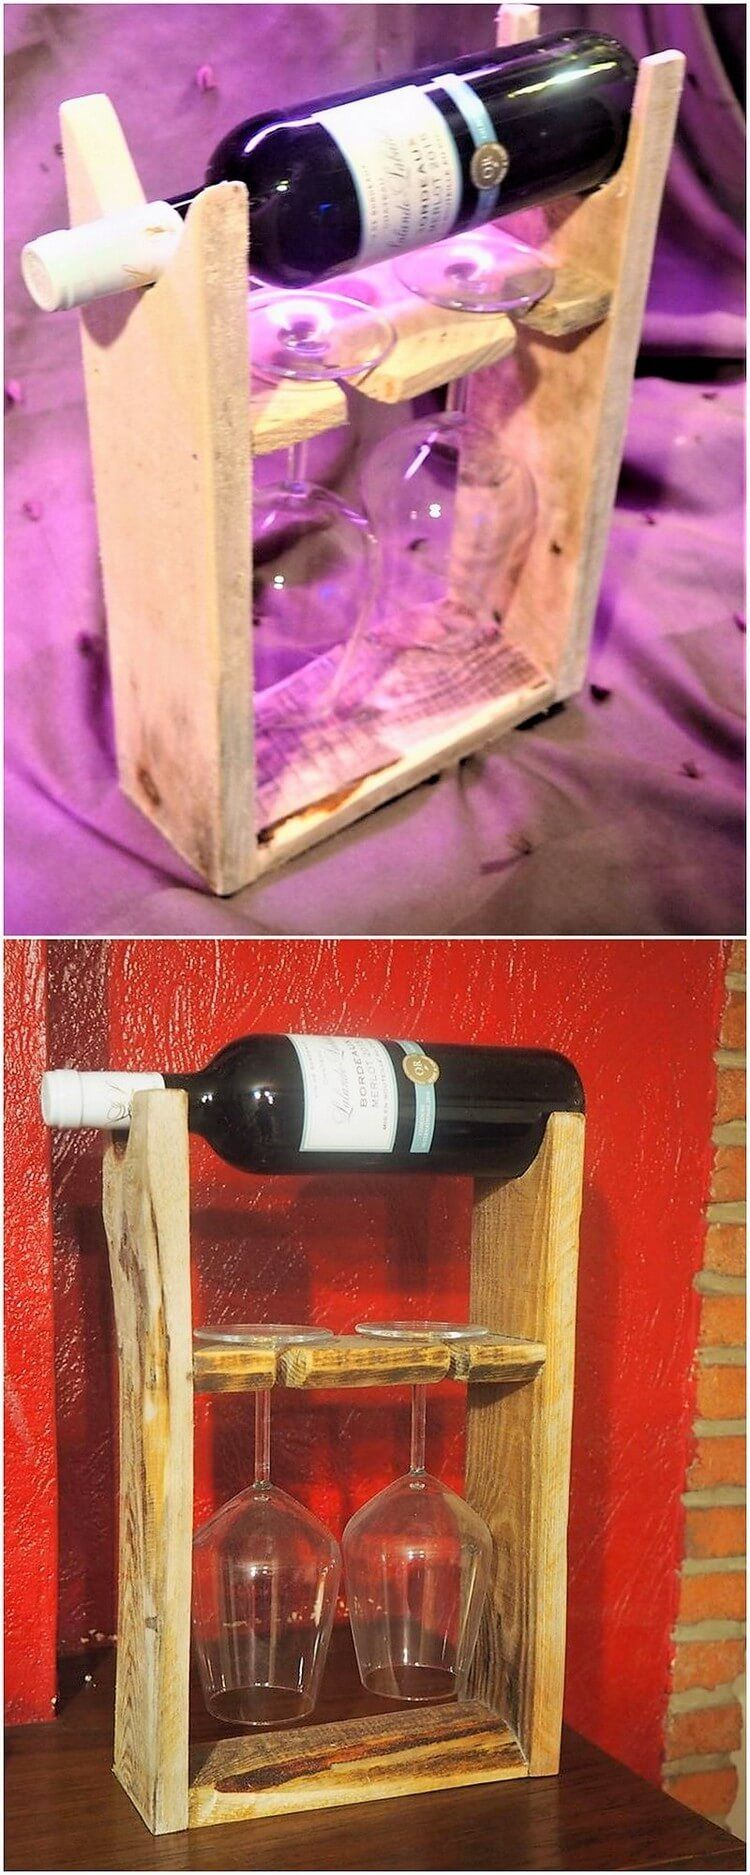 This Is Another Idea Of Using The Wood Pallet In The Creation Of The Wine Rack With The Glass Holder This Creation Wooden Wine Rack Wood Pallets Diy Wine Rack